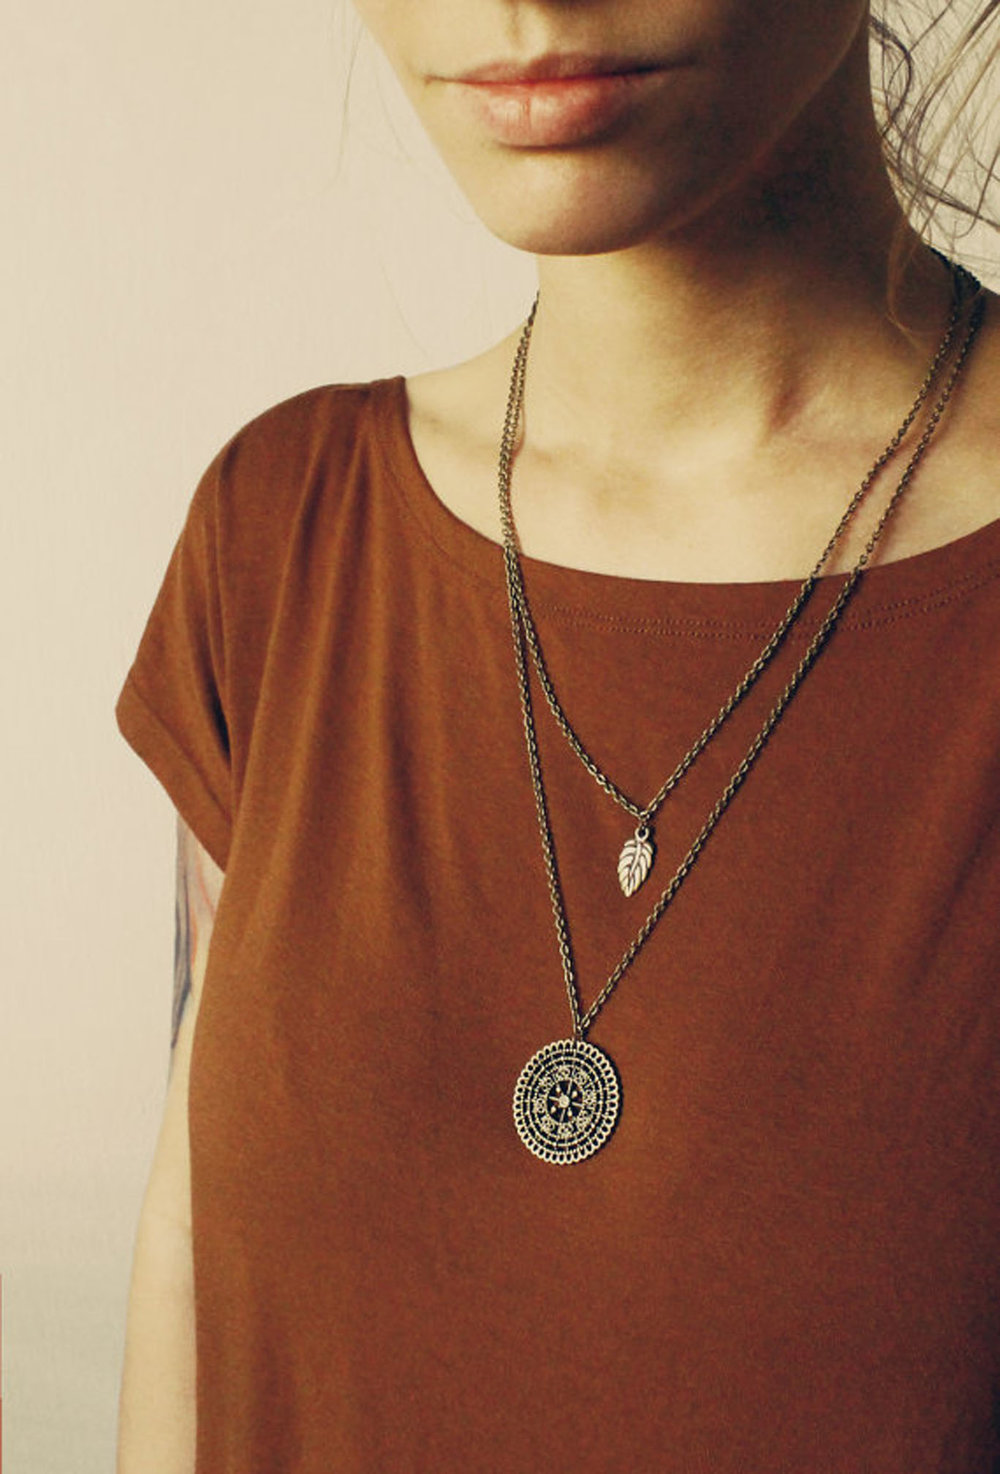 Ananke Jewelry featured on bohocollective.com